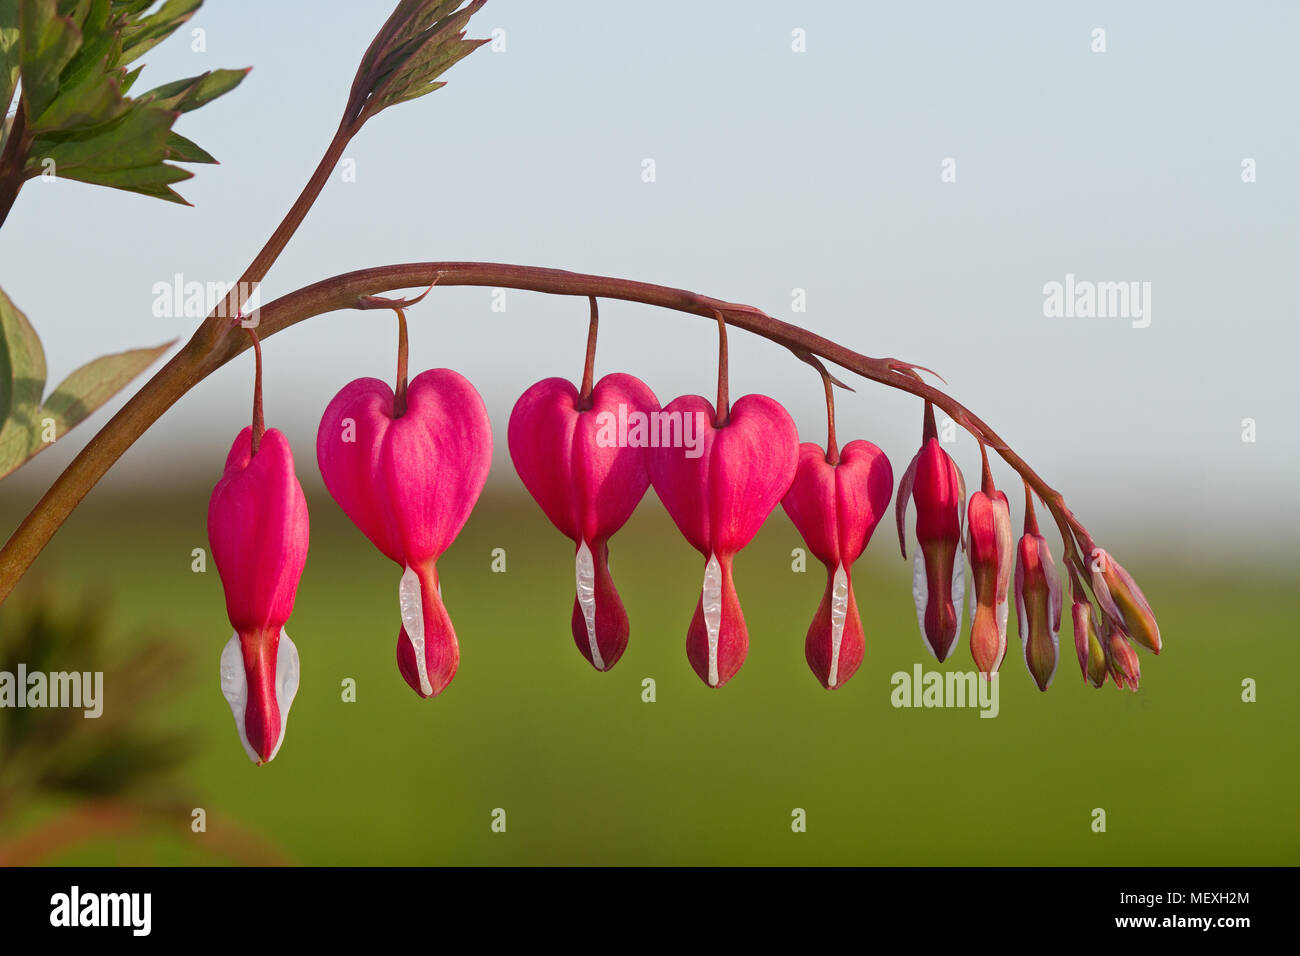 The Heart Shaped Pink And White Flowers Of Bleeding Heart Also